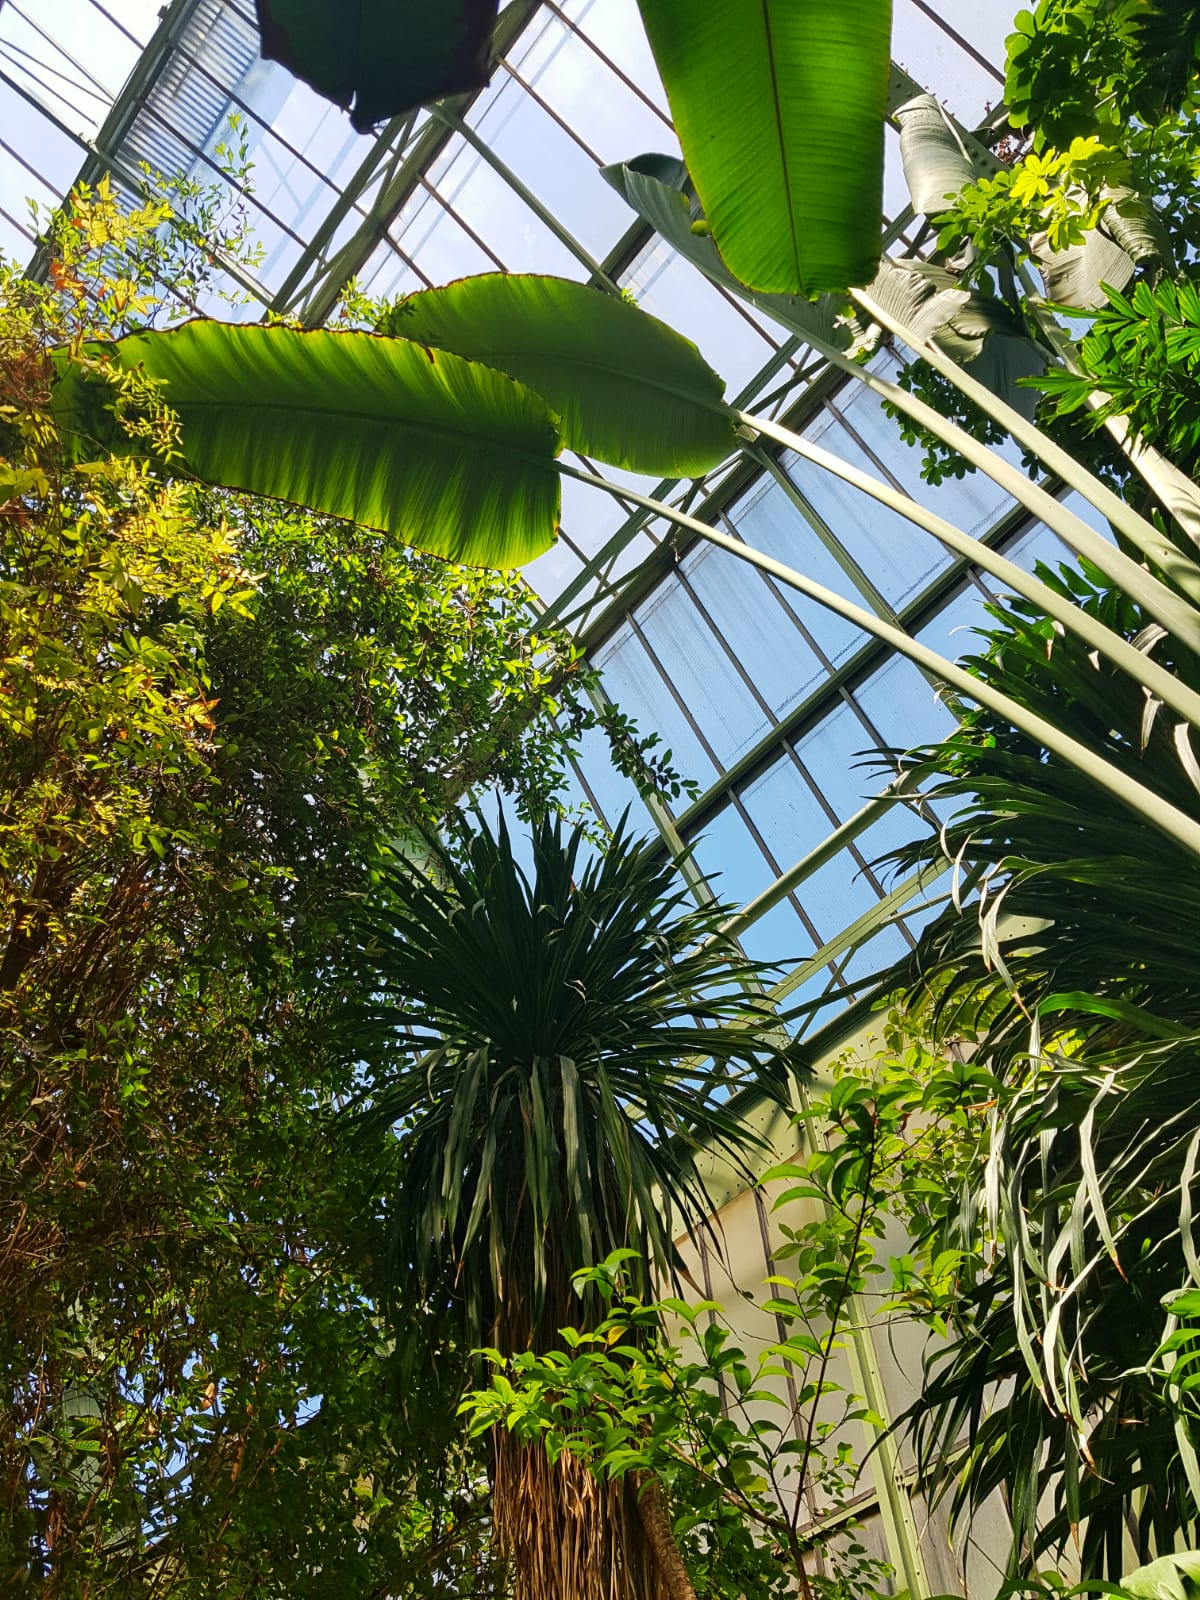 Jardin Des Plantes Paris greenhouse